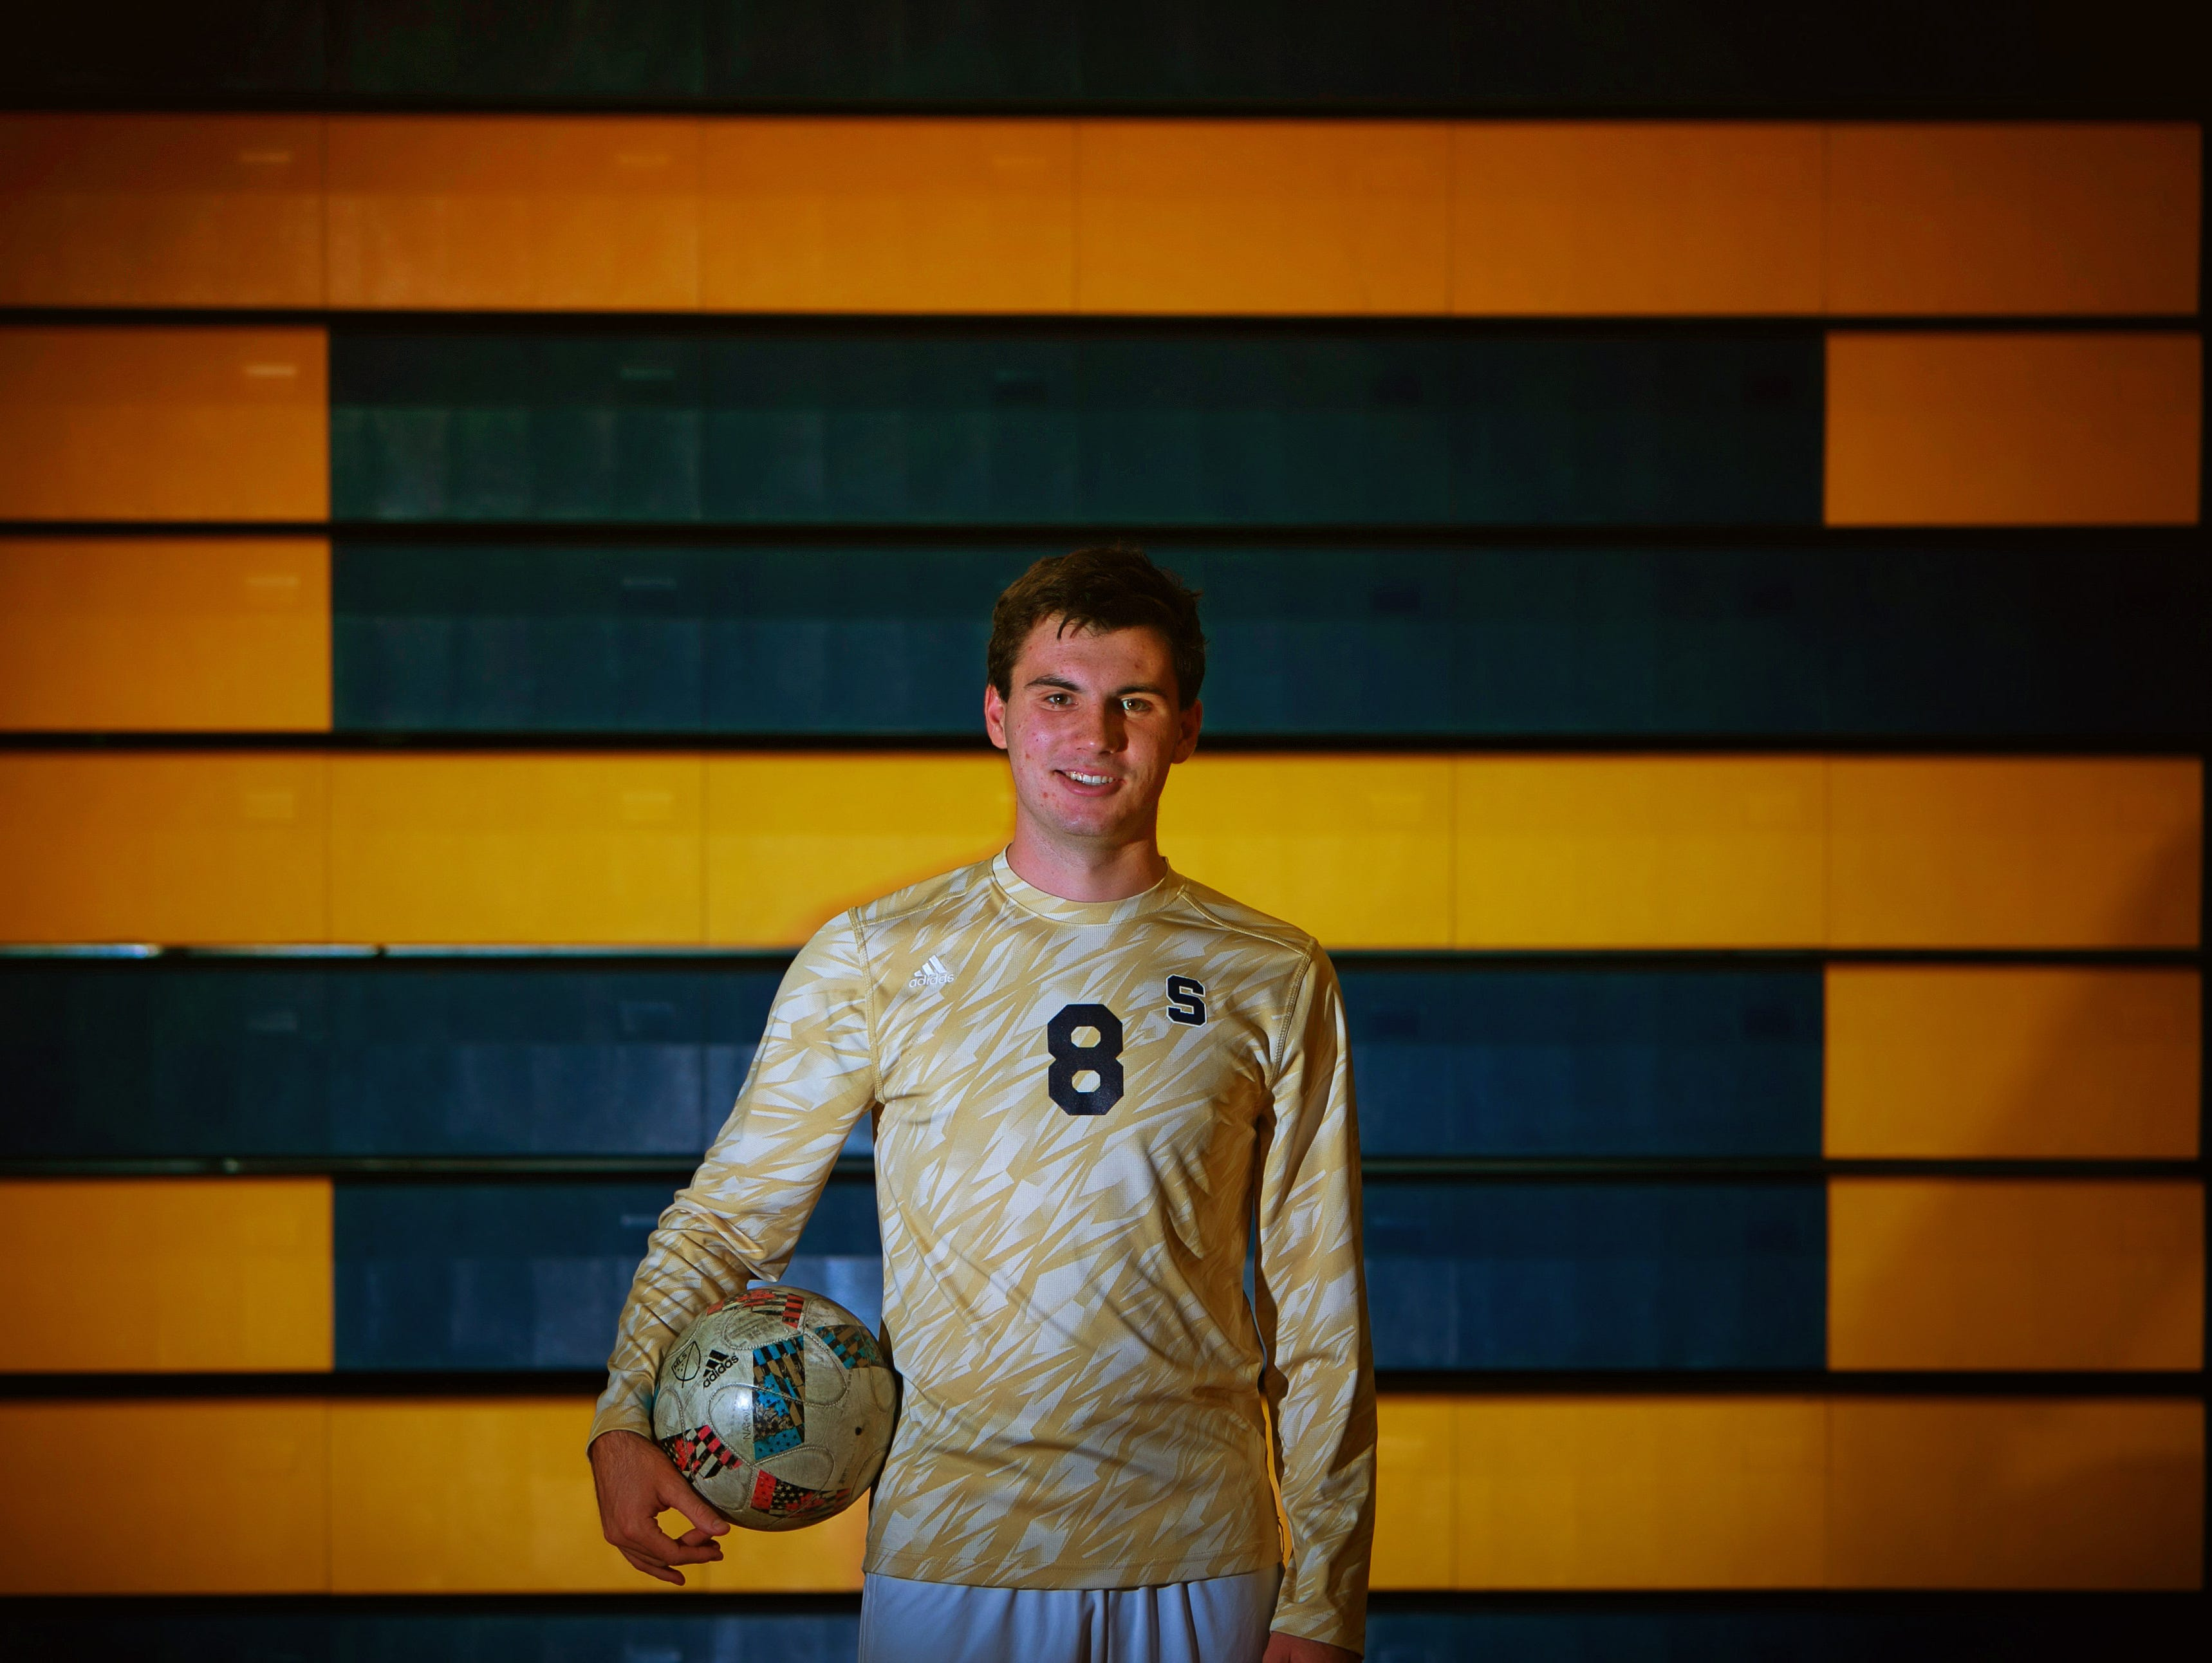 Player of the Year, Jason Blackwell of Salesianum.